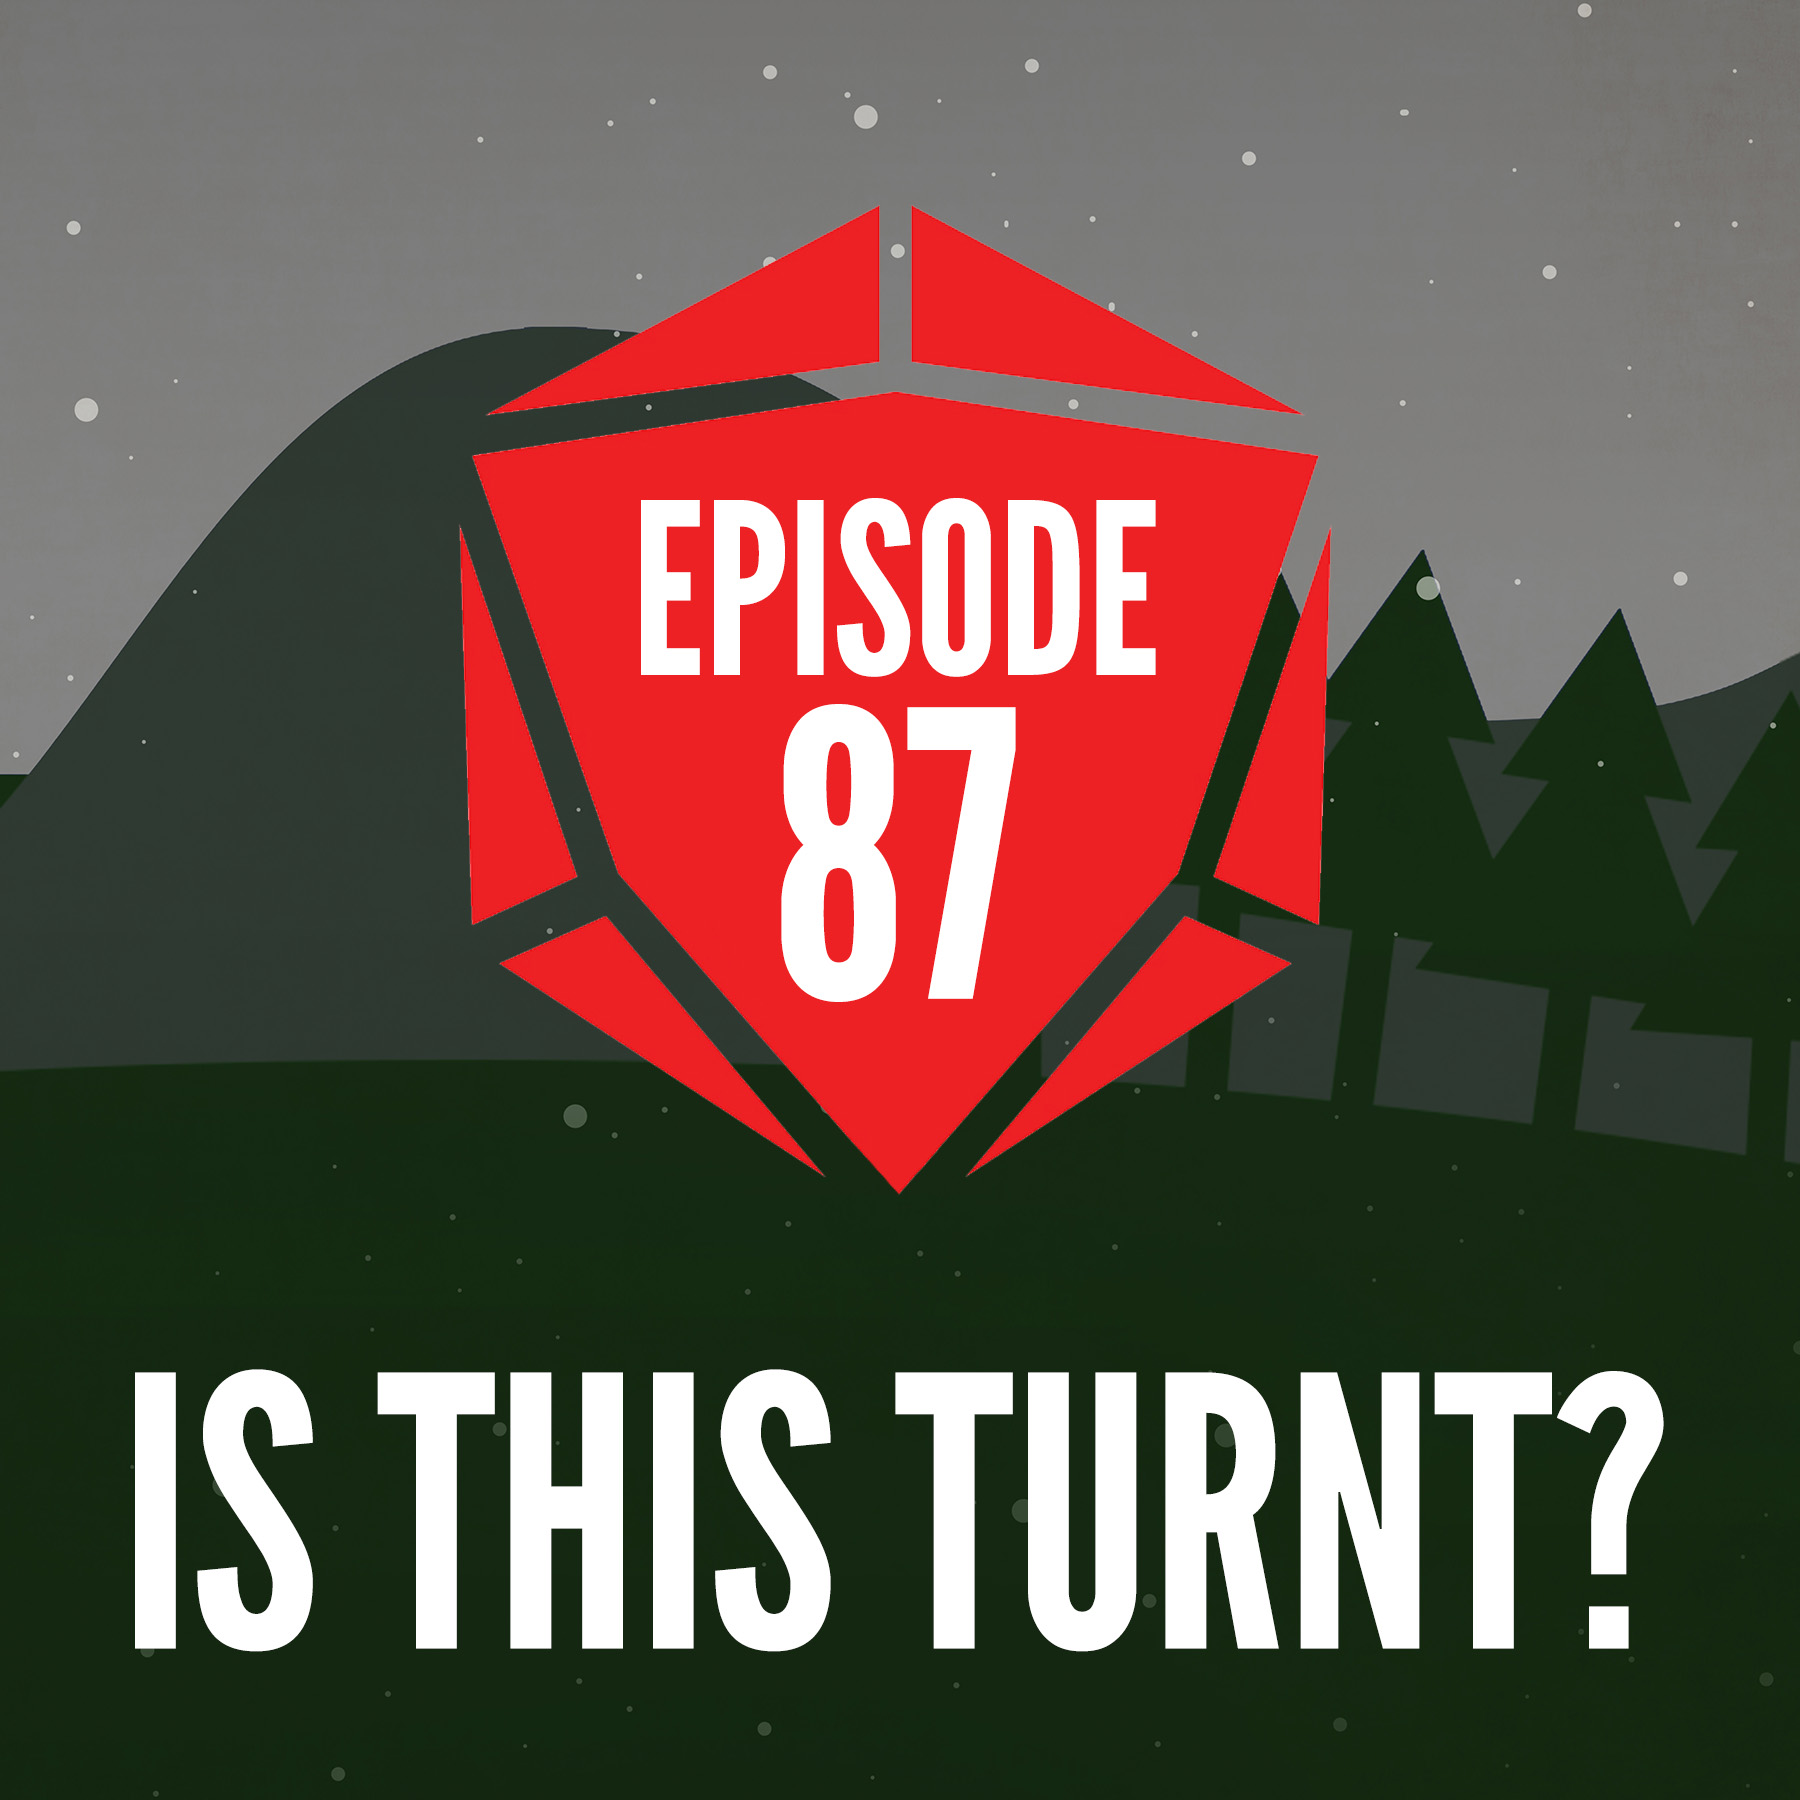 Episode 87: Is This Turnt?